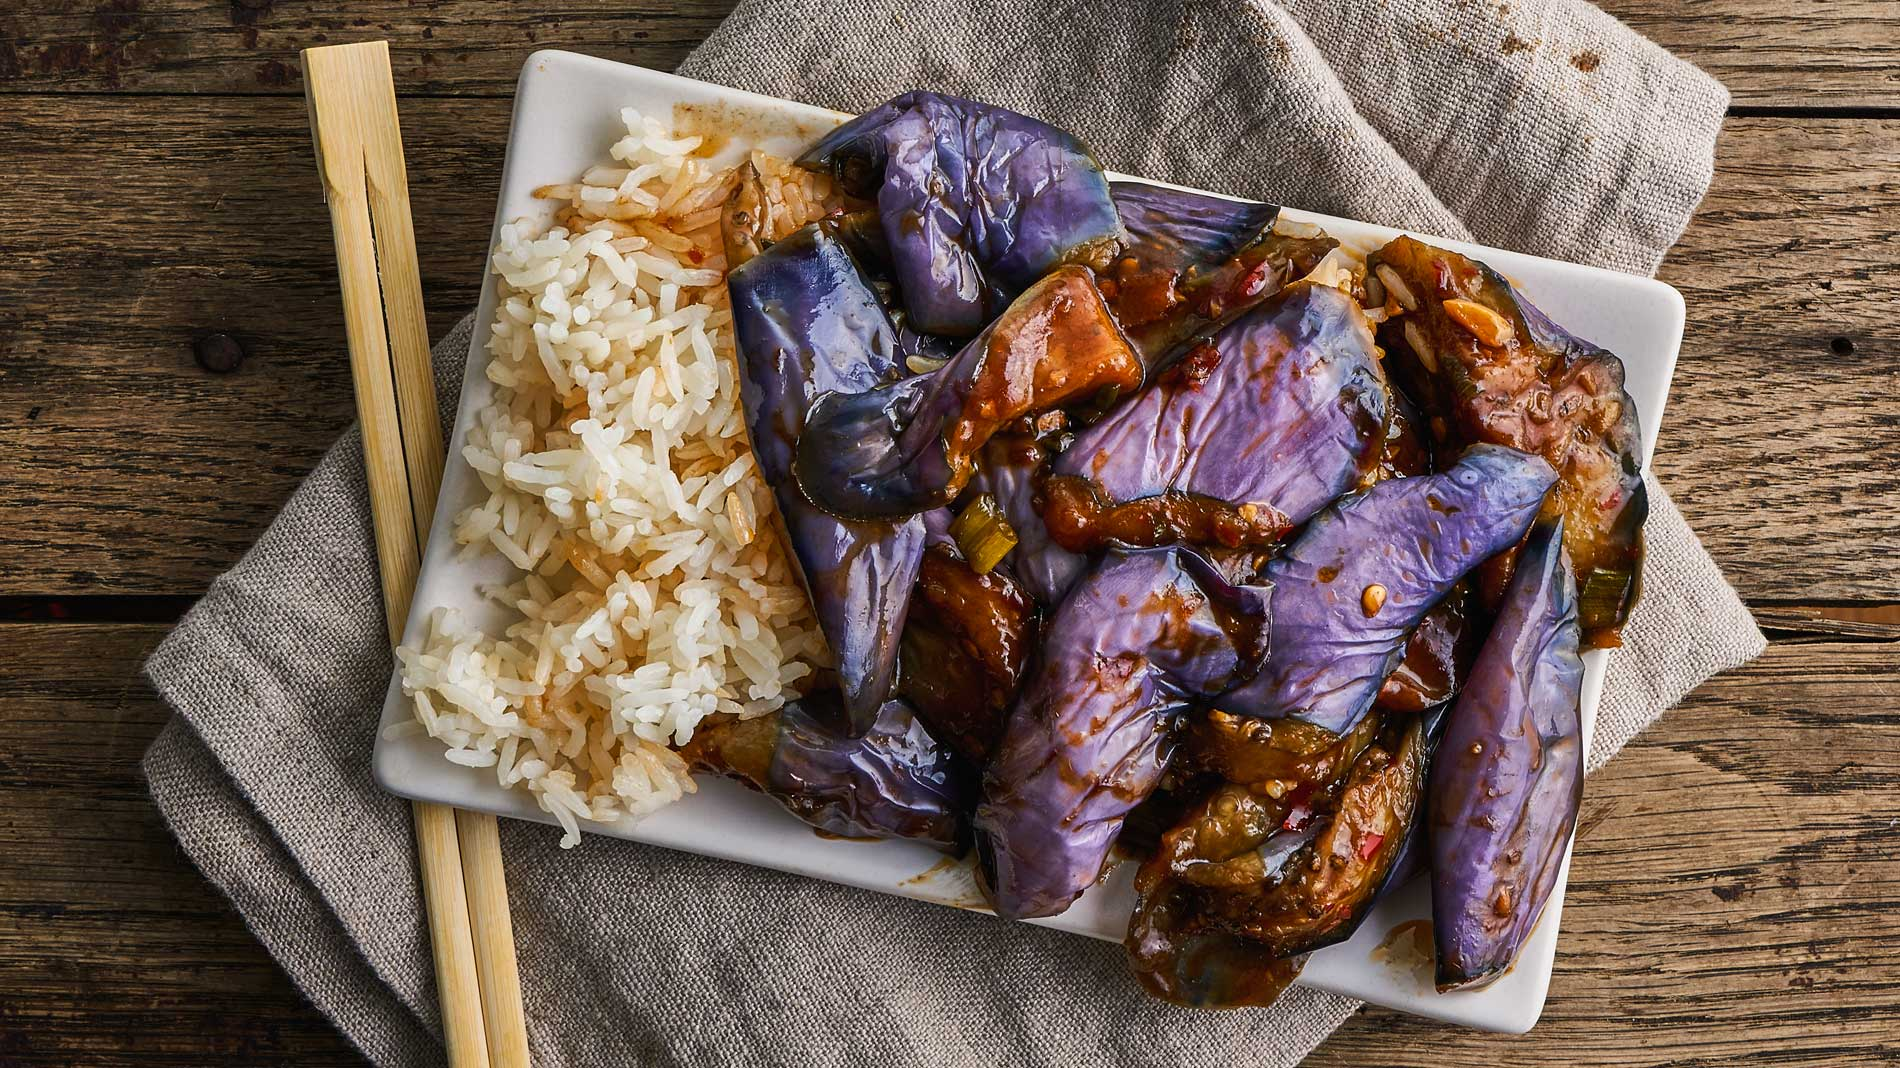 a plate of eggplant in garlic sauce